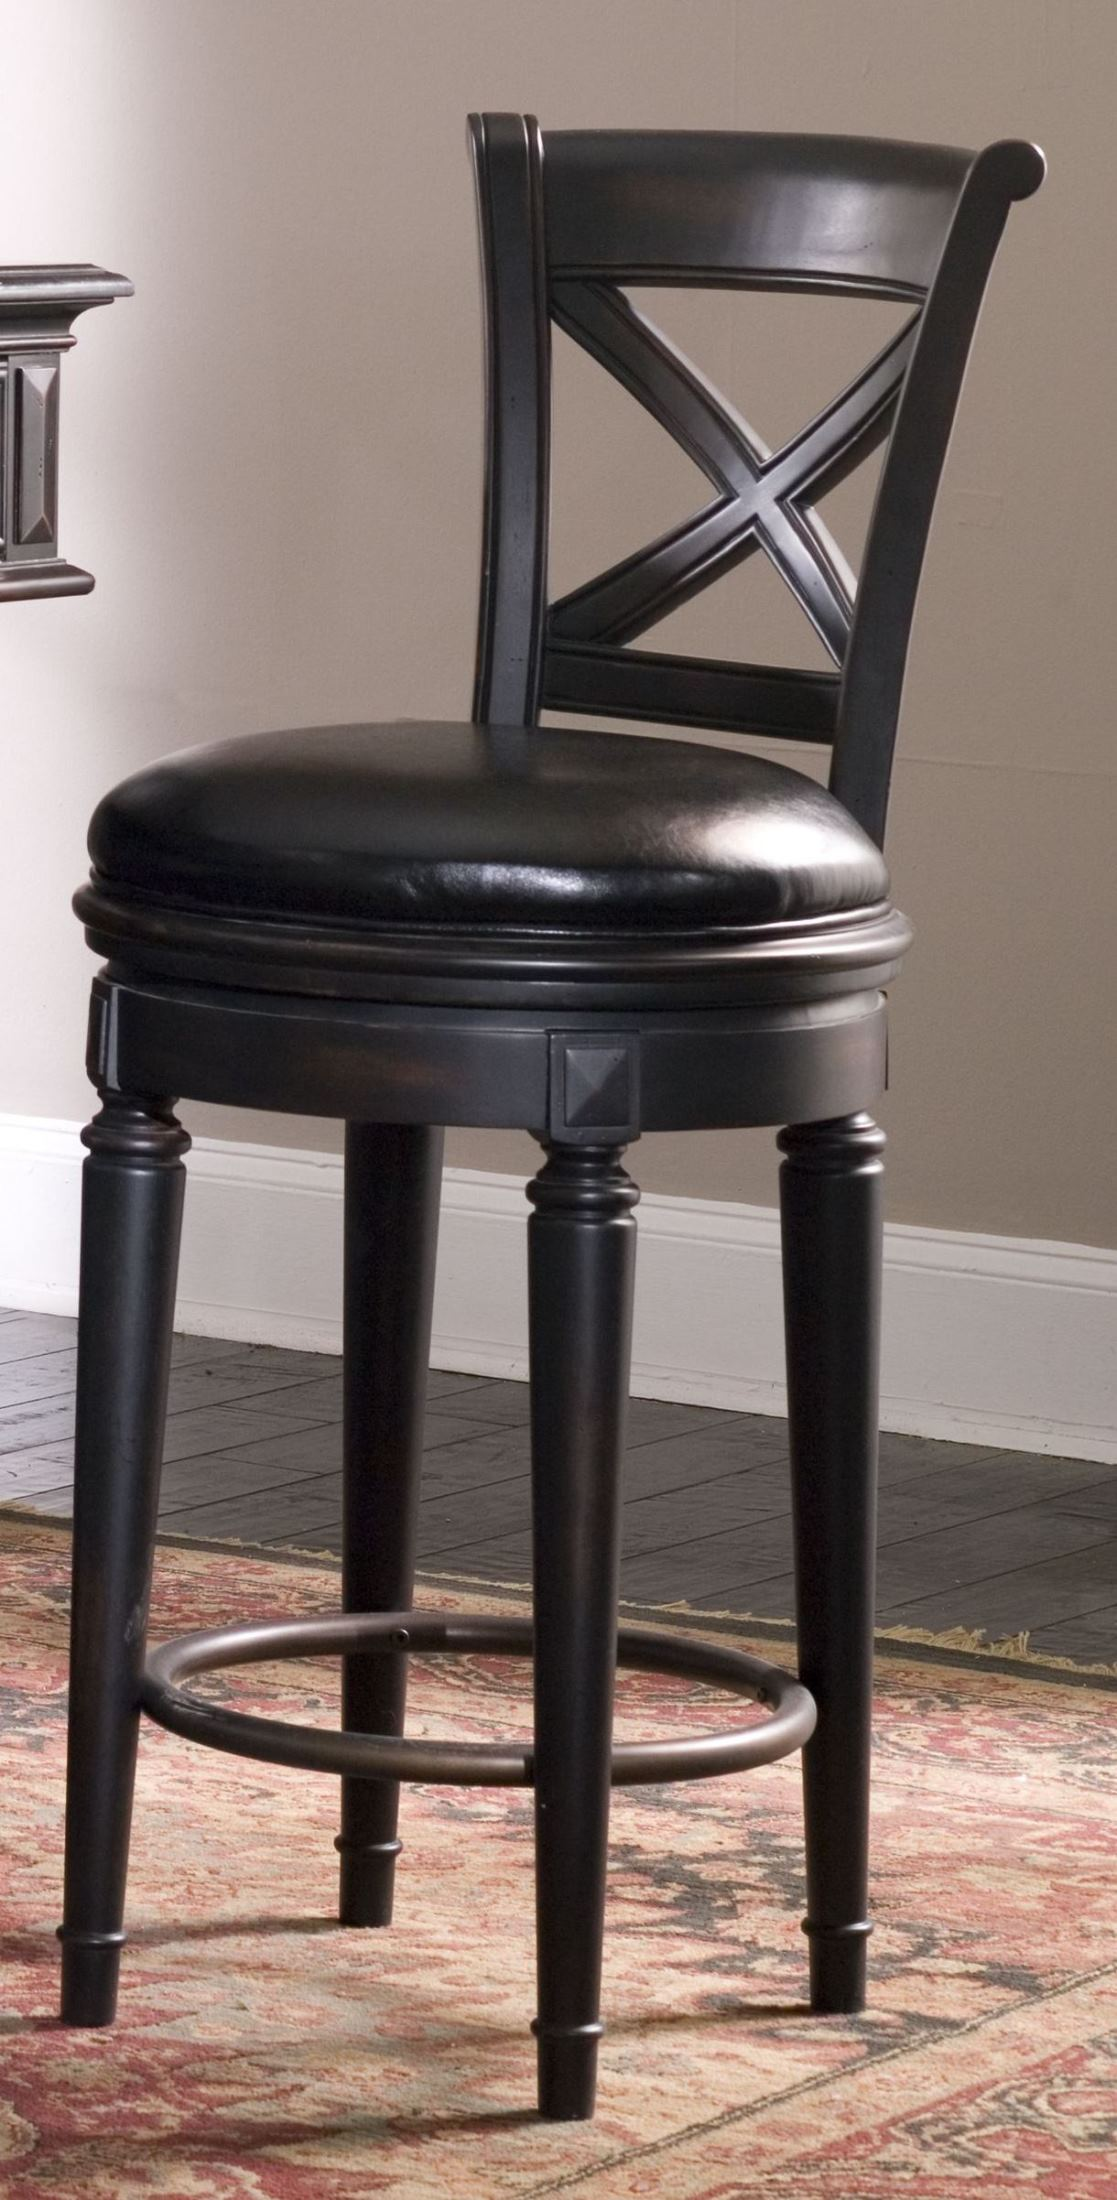 Stanley Furniture Dining Room Sets Counter Height Stools Buy Discount Counter Height Chairs